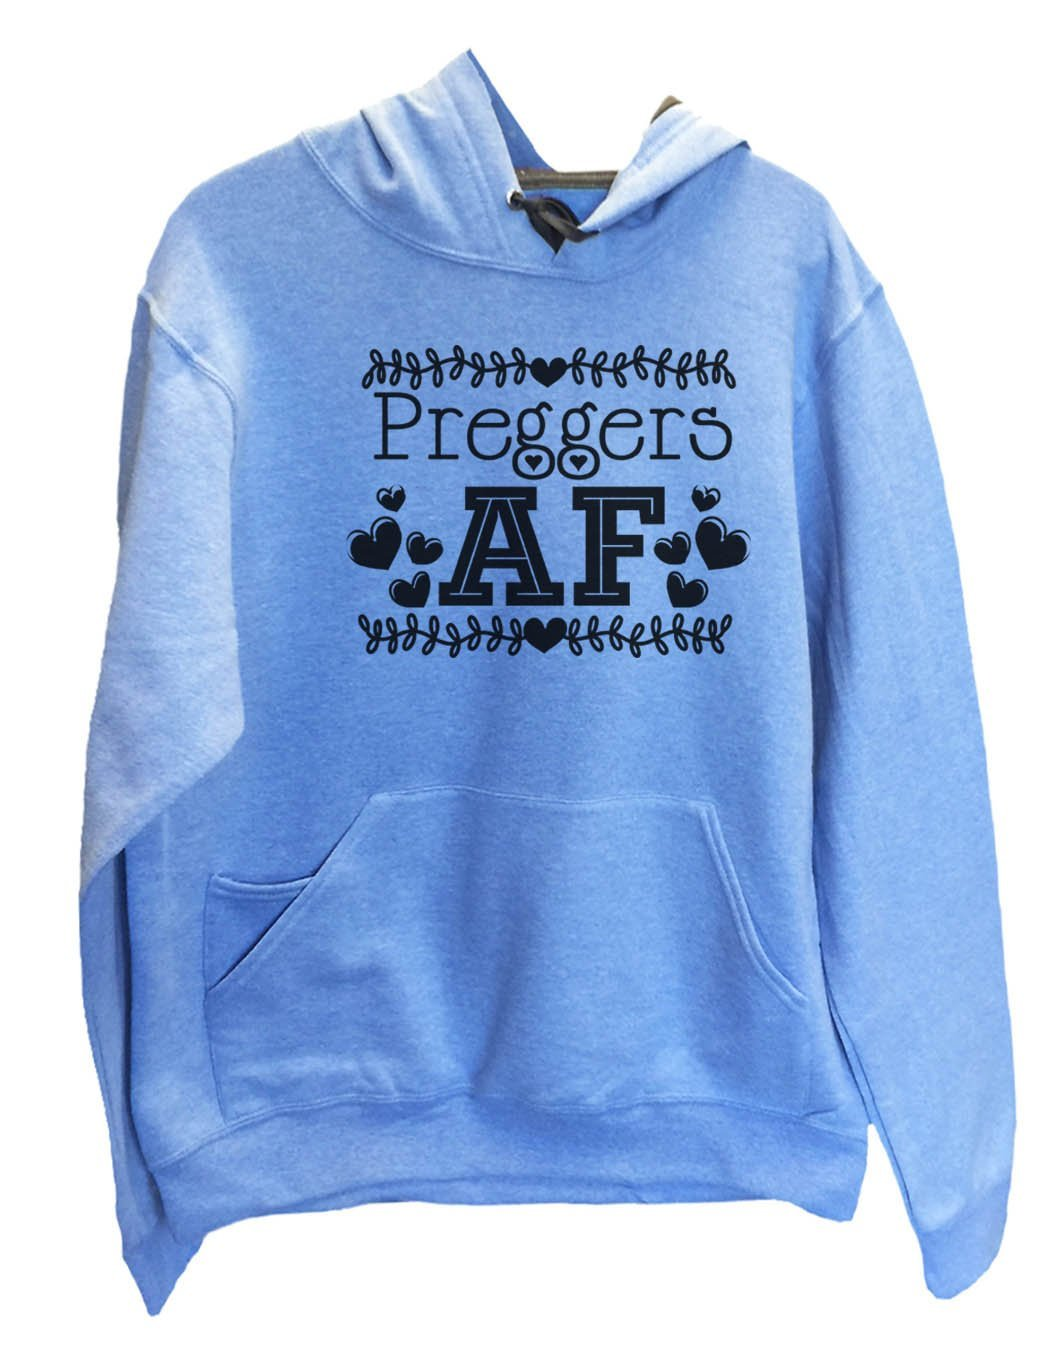 UNISEX HOODIE - Preggers Af - FUNNY MENS AND WOMENS HOODED SWEATSHIRTS - 2255 Funny Shirt Small / North Carolina Blue